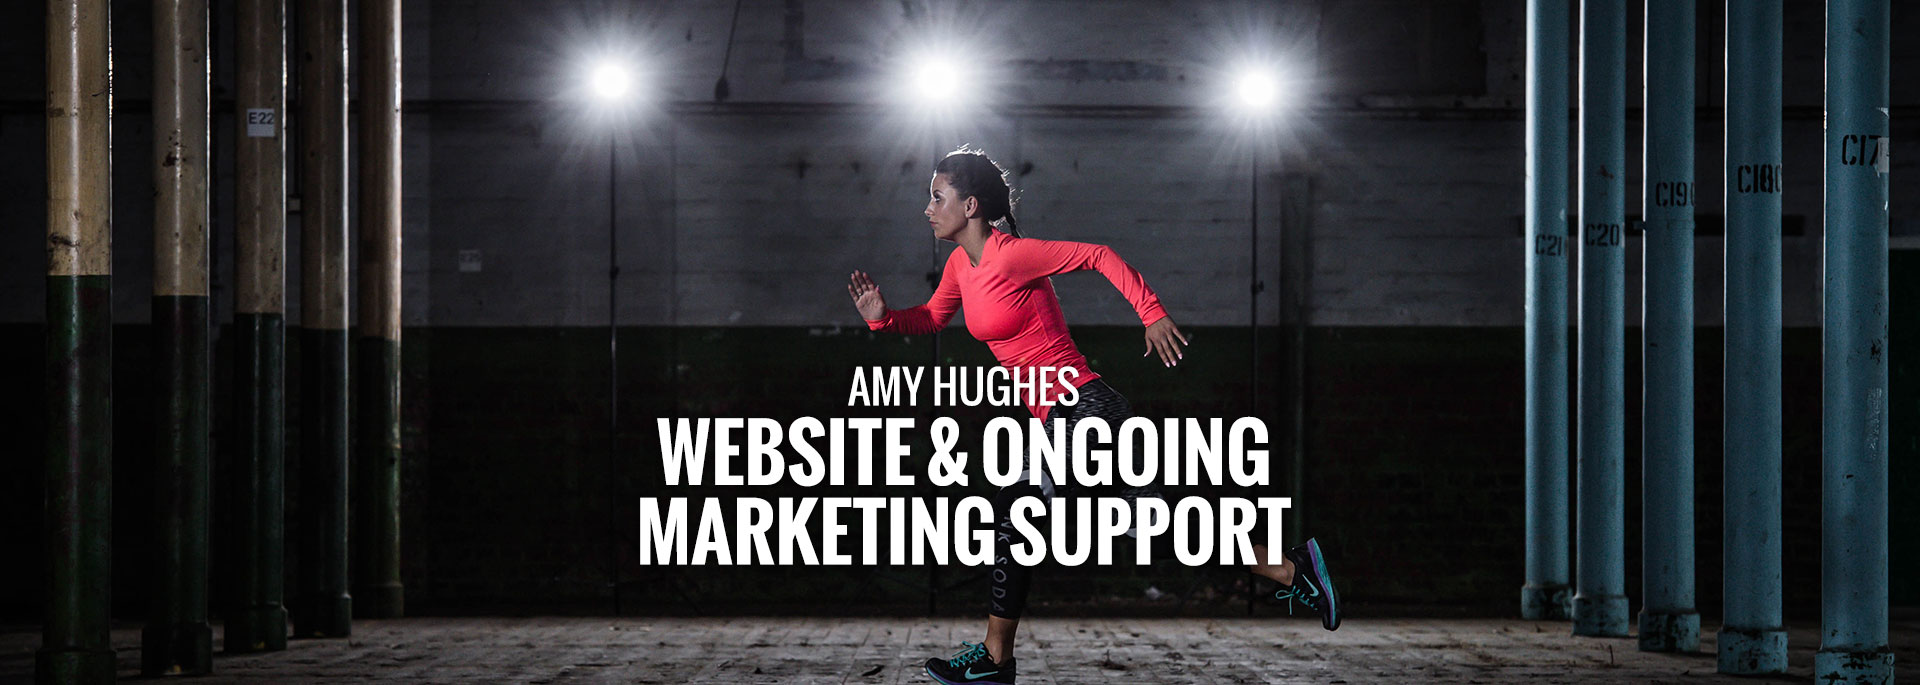 Amy Hughes Website and ongoing marketing